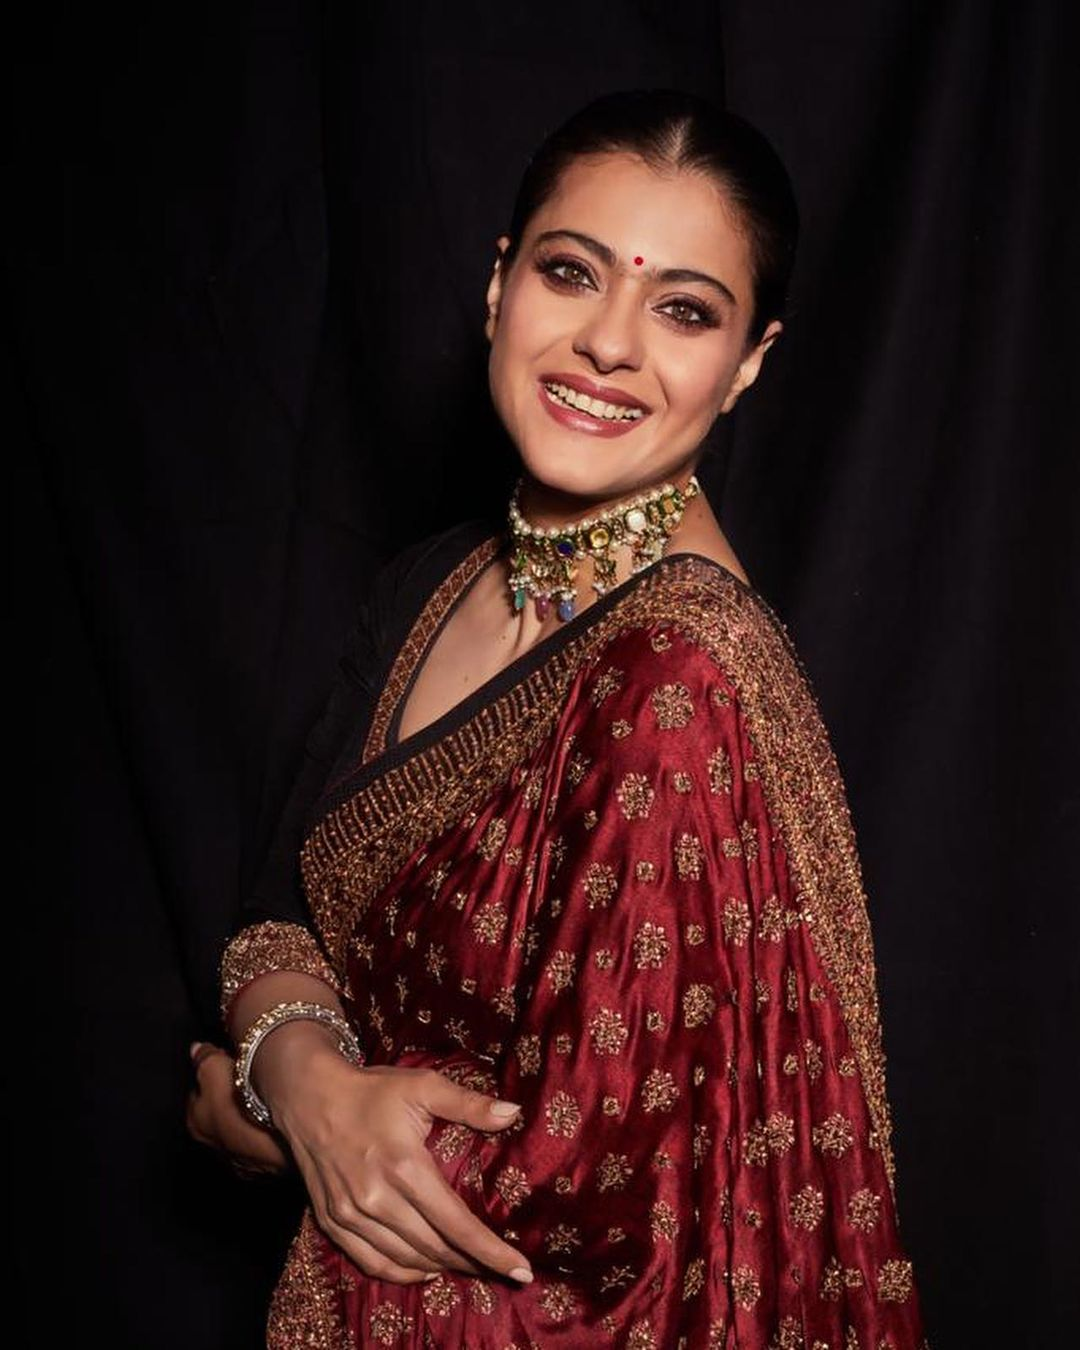 On her Birthday, NLC Wishes the Legendary Actress Kajol a Blockbuster Year Ahead.